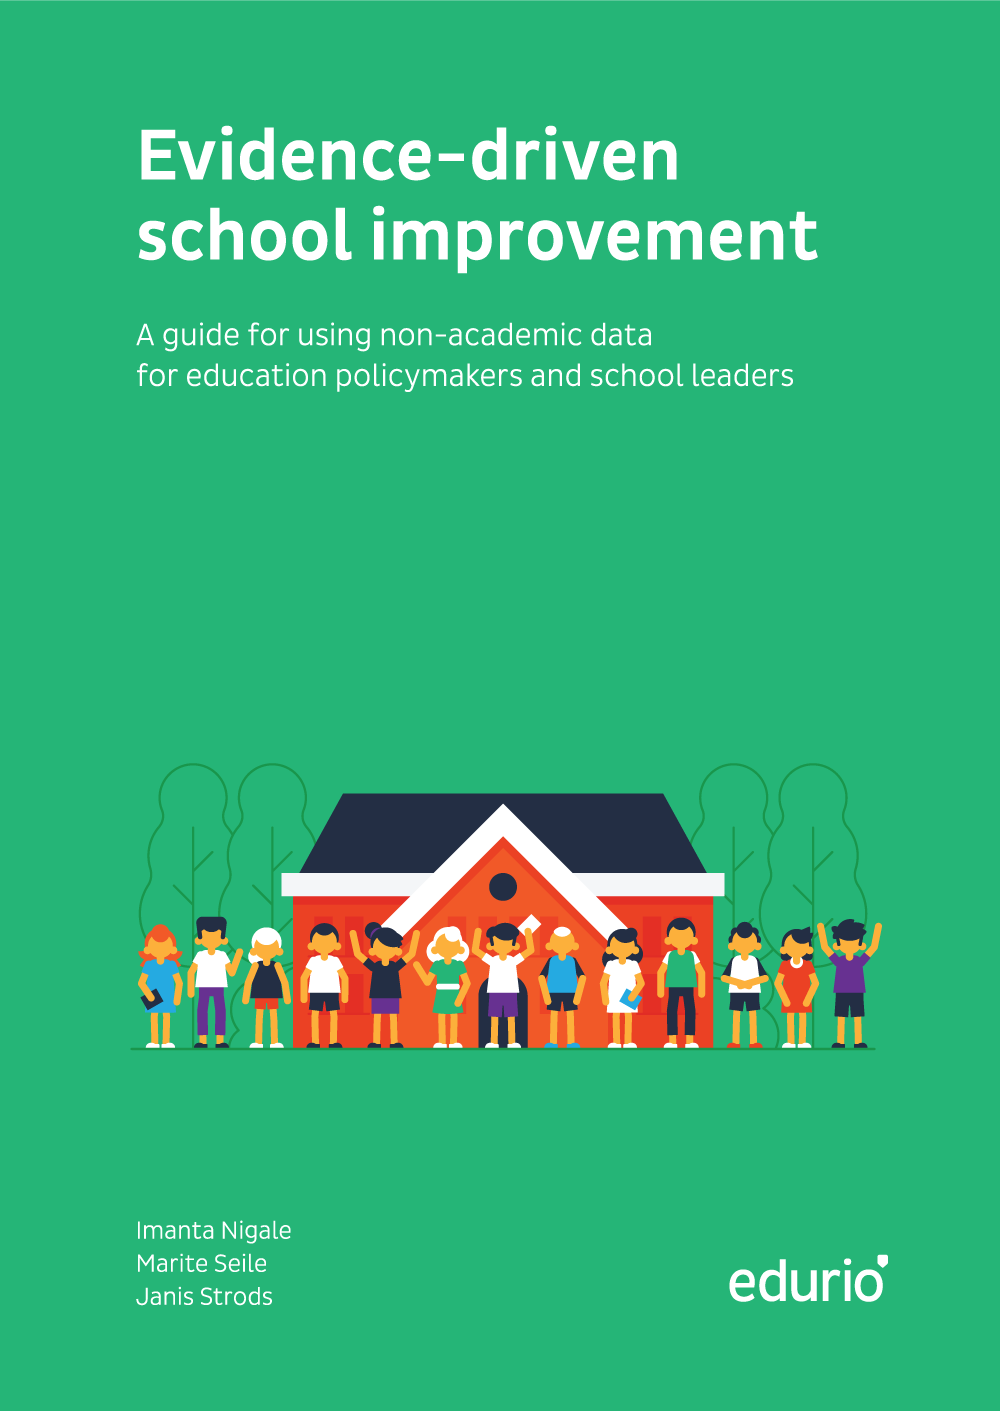 evidence-driven_school_improvement_with_cover